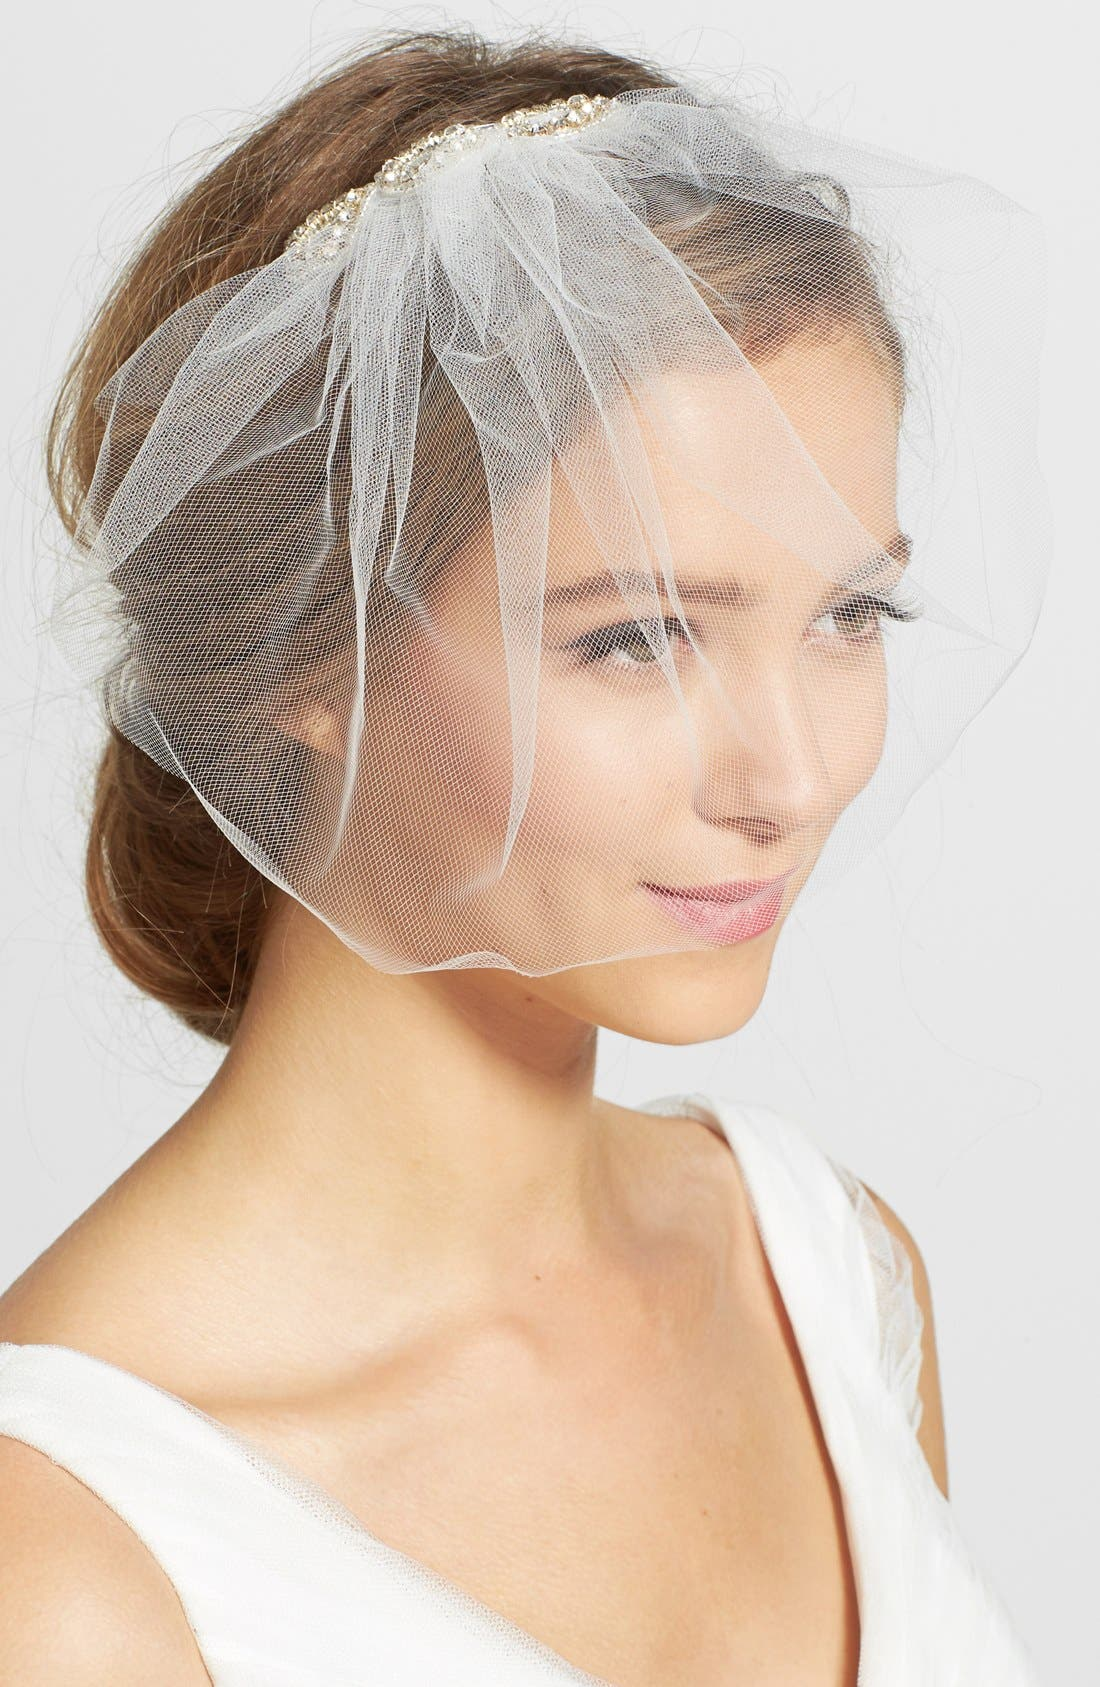 Main Image - J-Picone Crystal Comb Tulle Blusher/Birdcage Veil